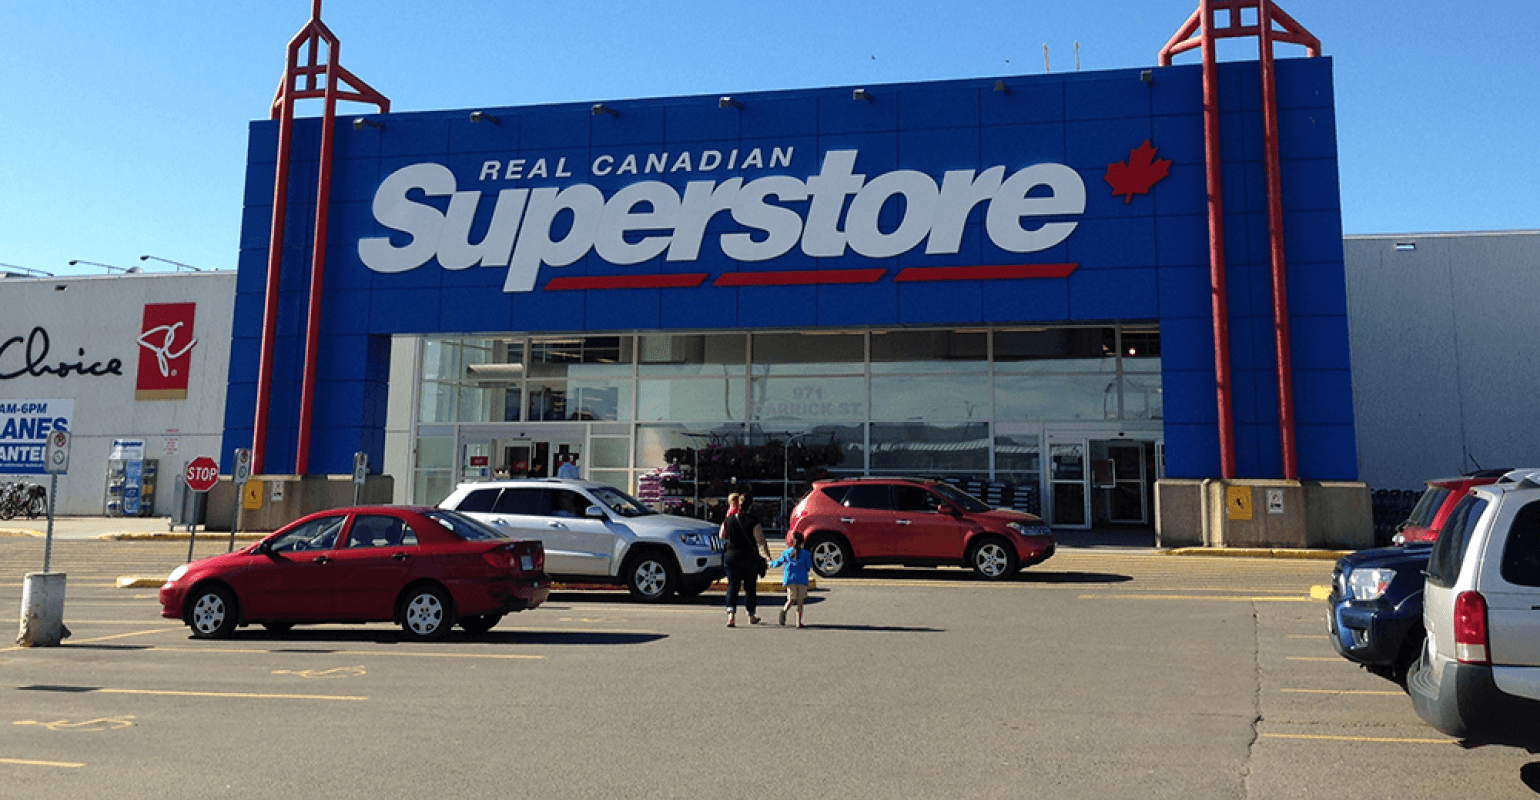 Canadian SuperStore Front Part